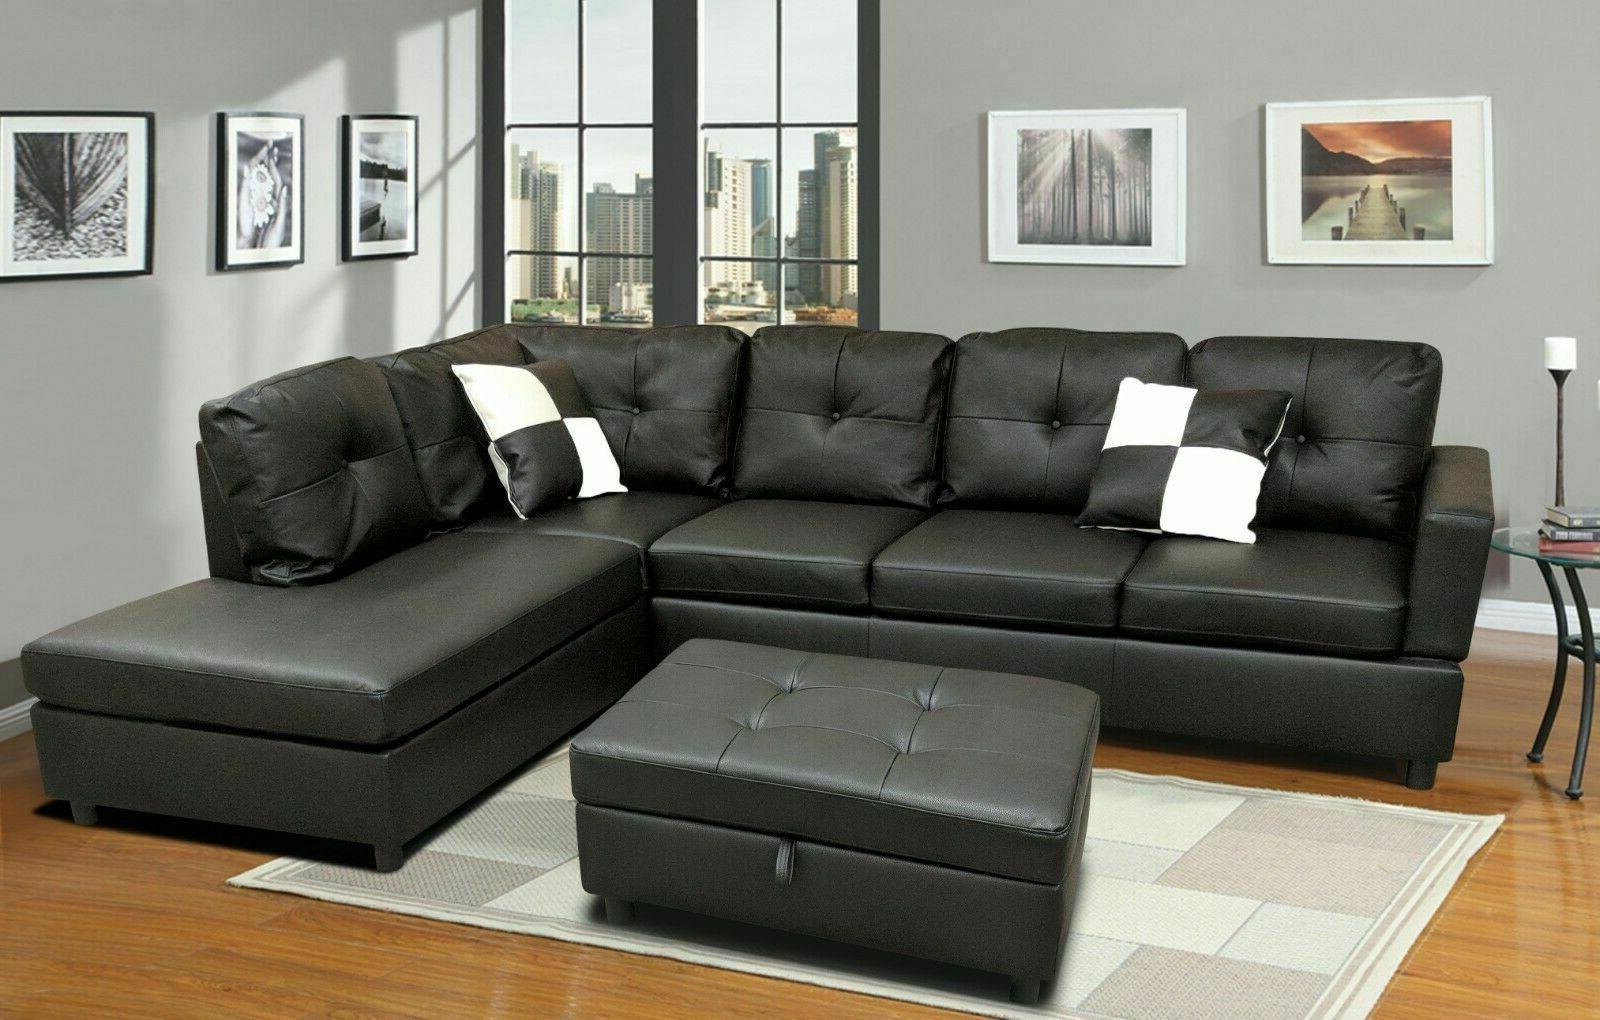 luxury faux leather living room sectional sofa